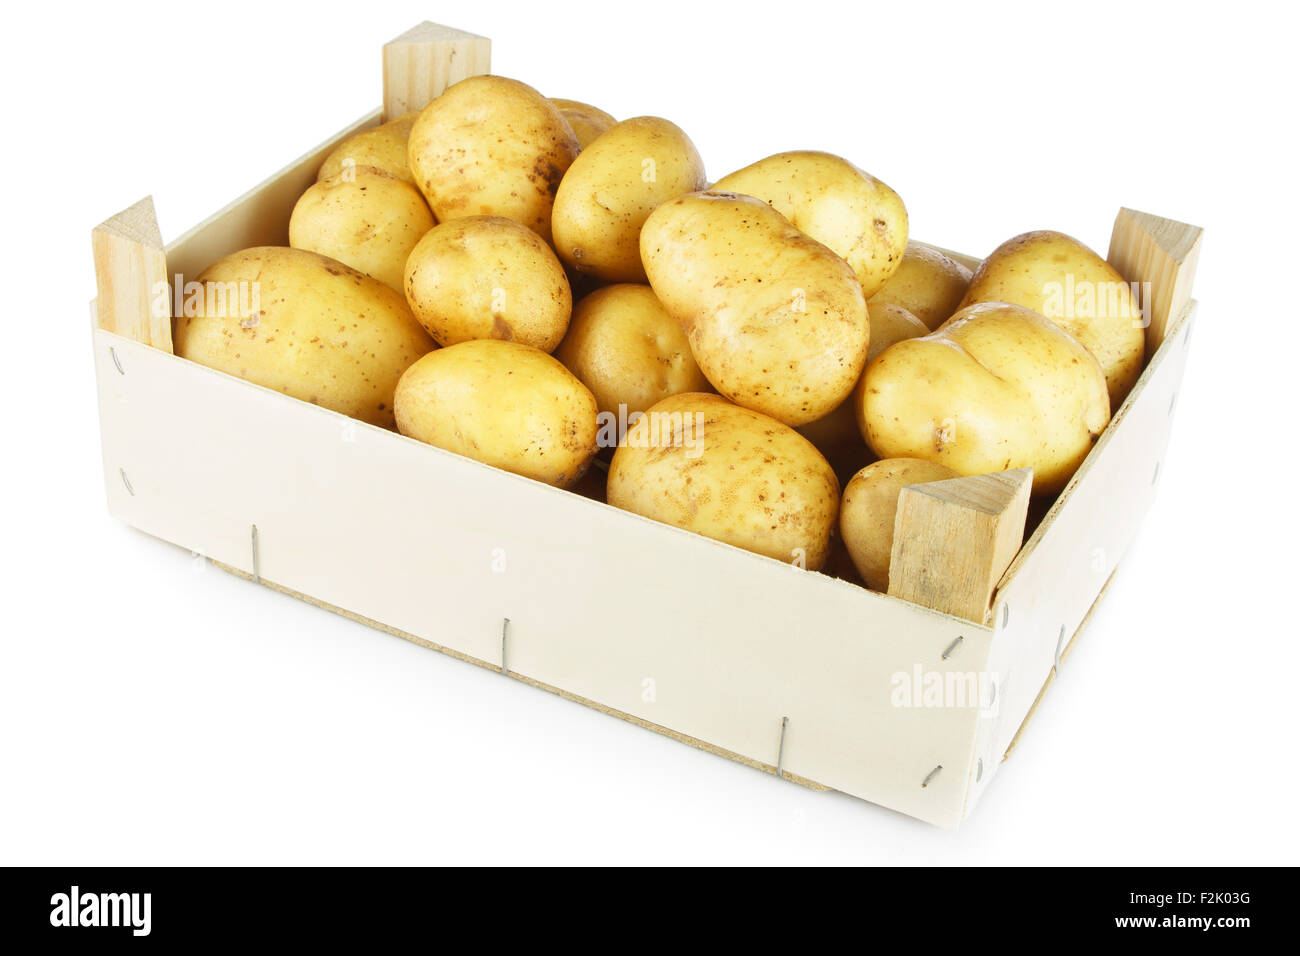 Potato in wooden box isolated on white background - Stock Image